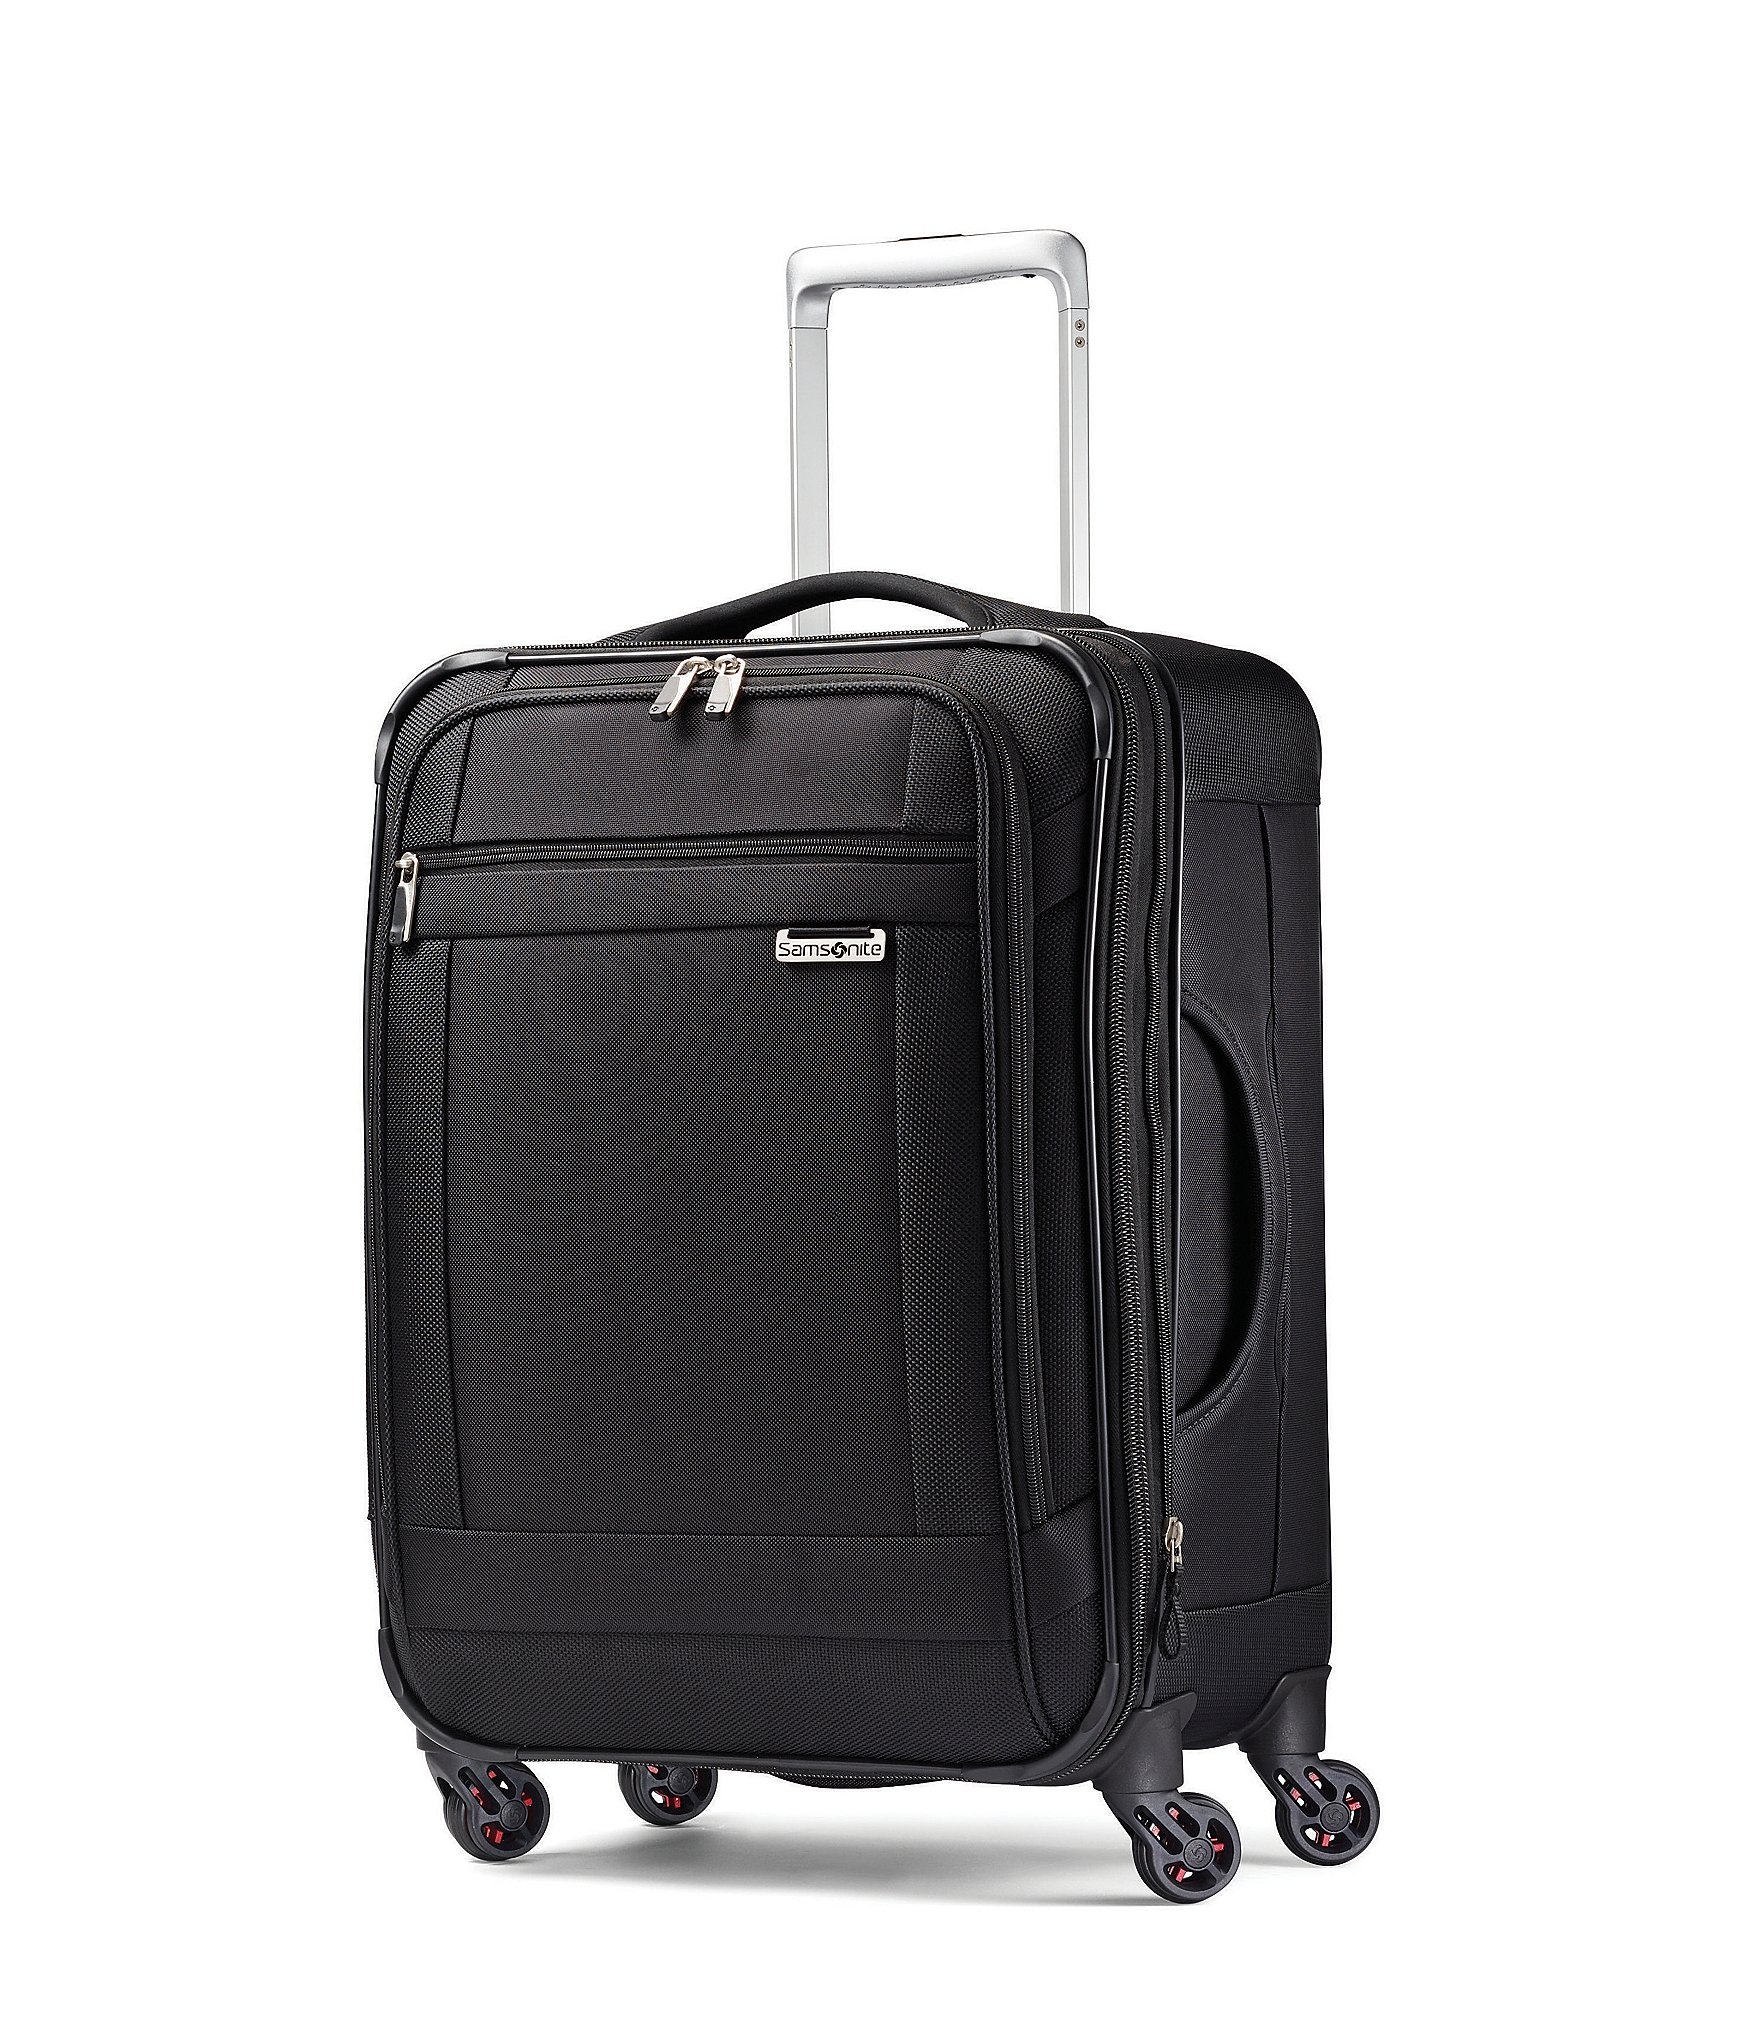 Samsonite Solyte 20 Expandable Carry On Spinner Upright Dillards